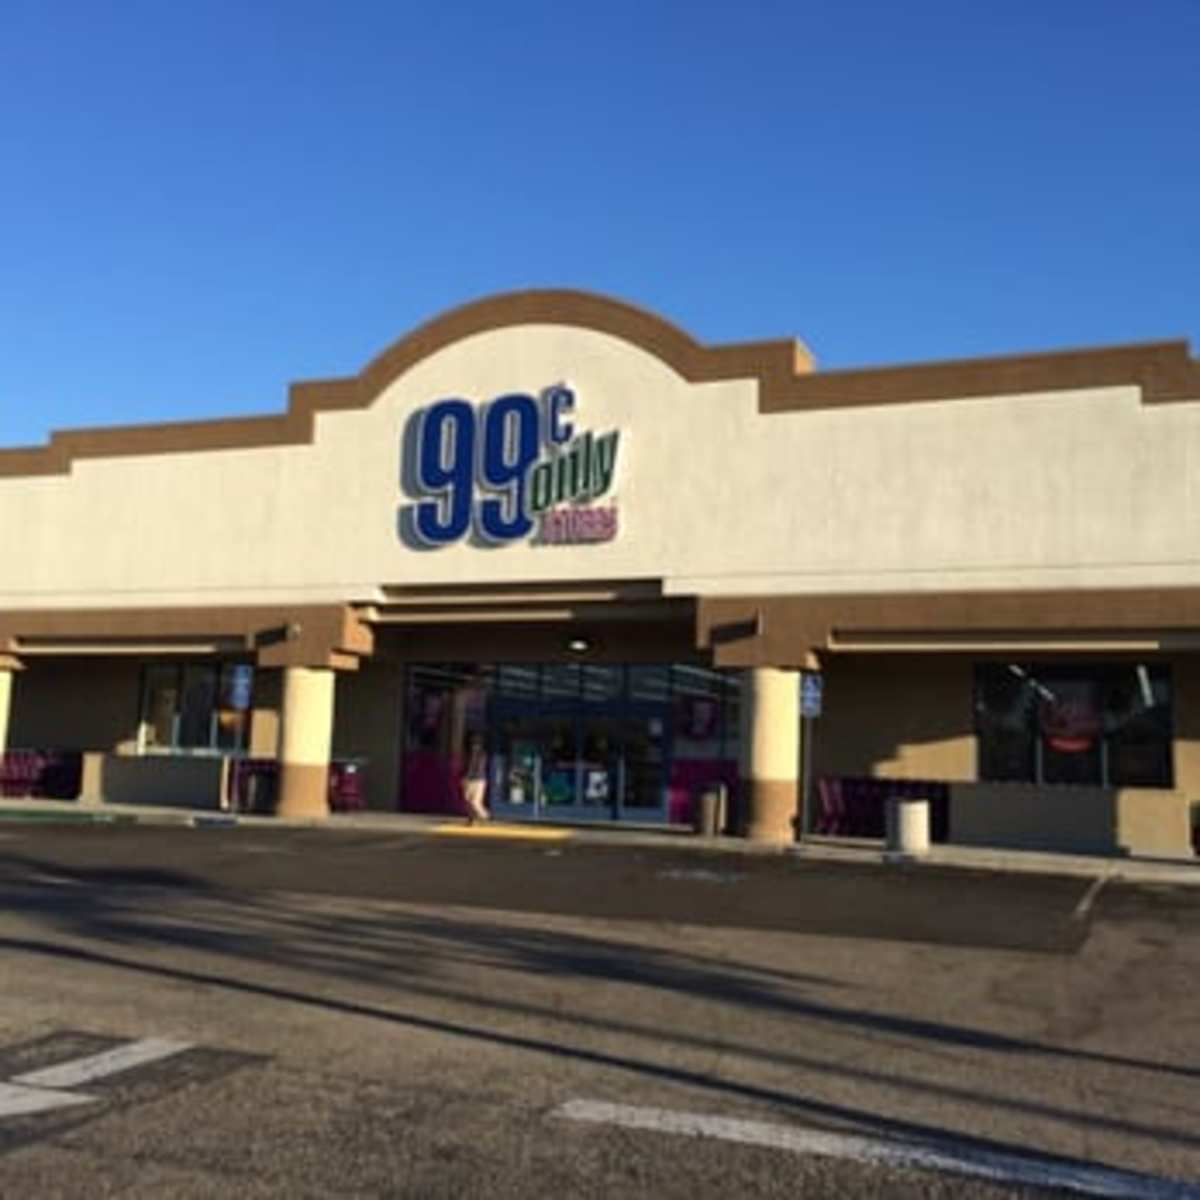 10-items-you-should-purchase-at-the-99-cent-store